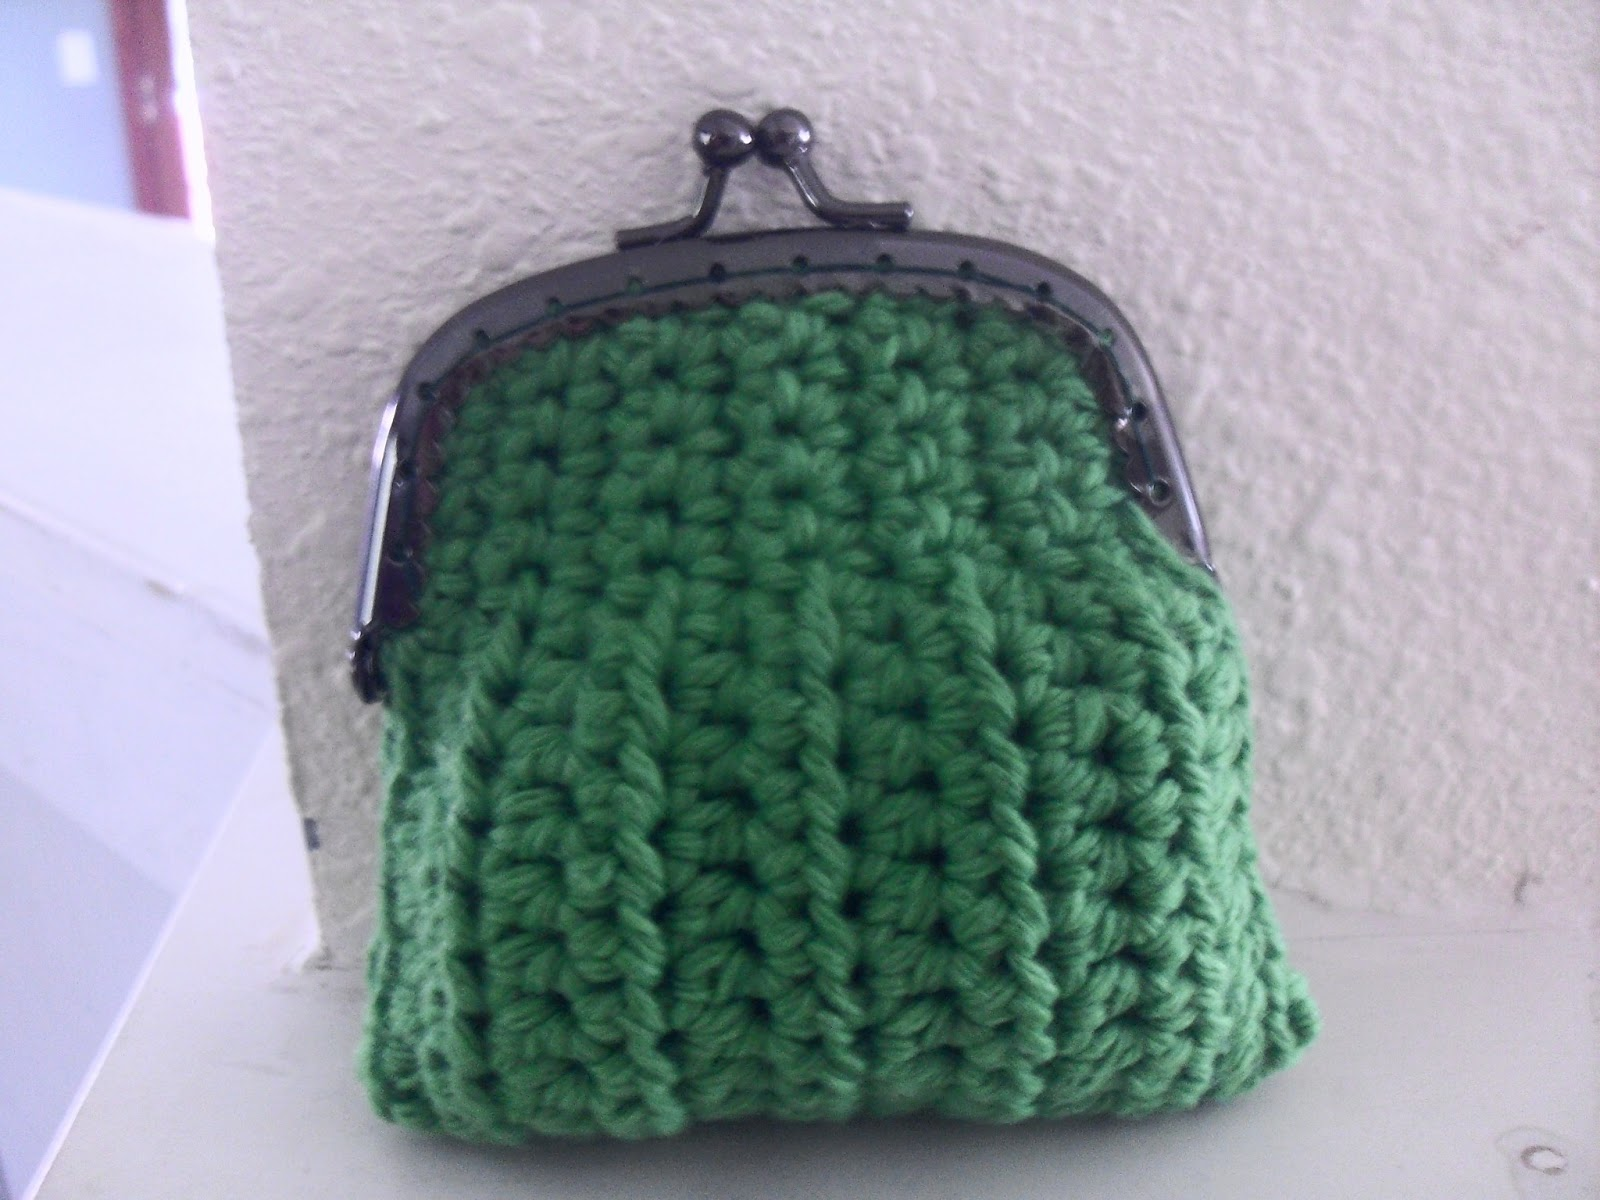 Crochet Coin Purse Pattern : Keri On: Crocheted Coin Purse Pattern